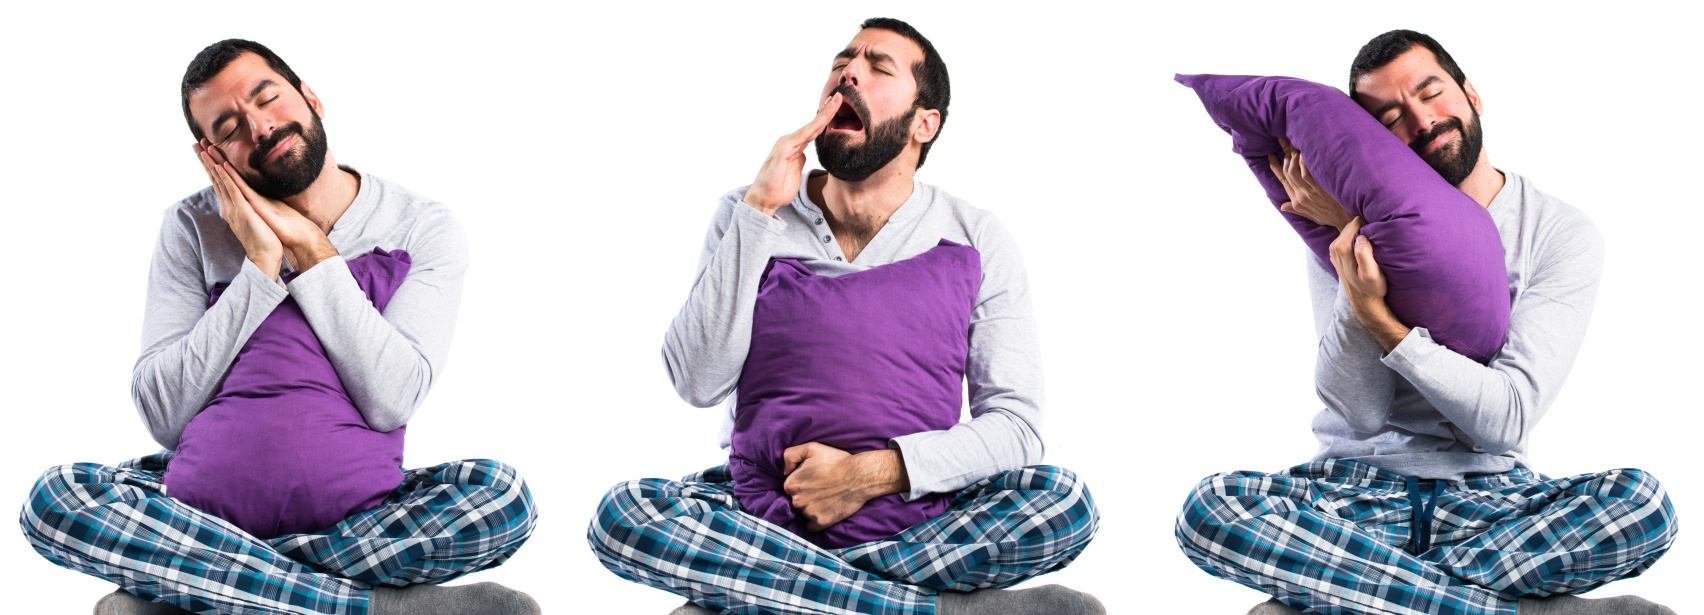 Pajamas Affect Sleep: Man in pajamas yawning